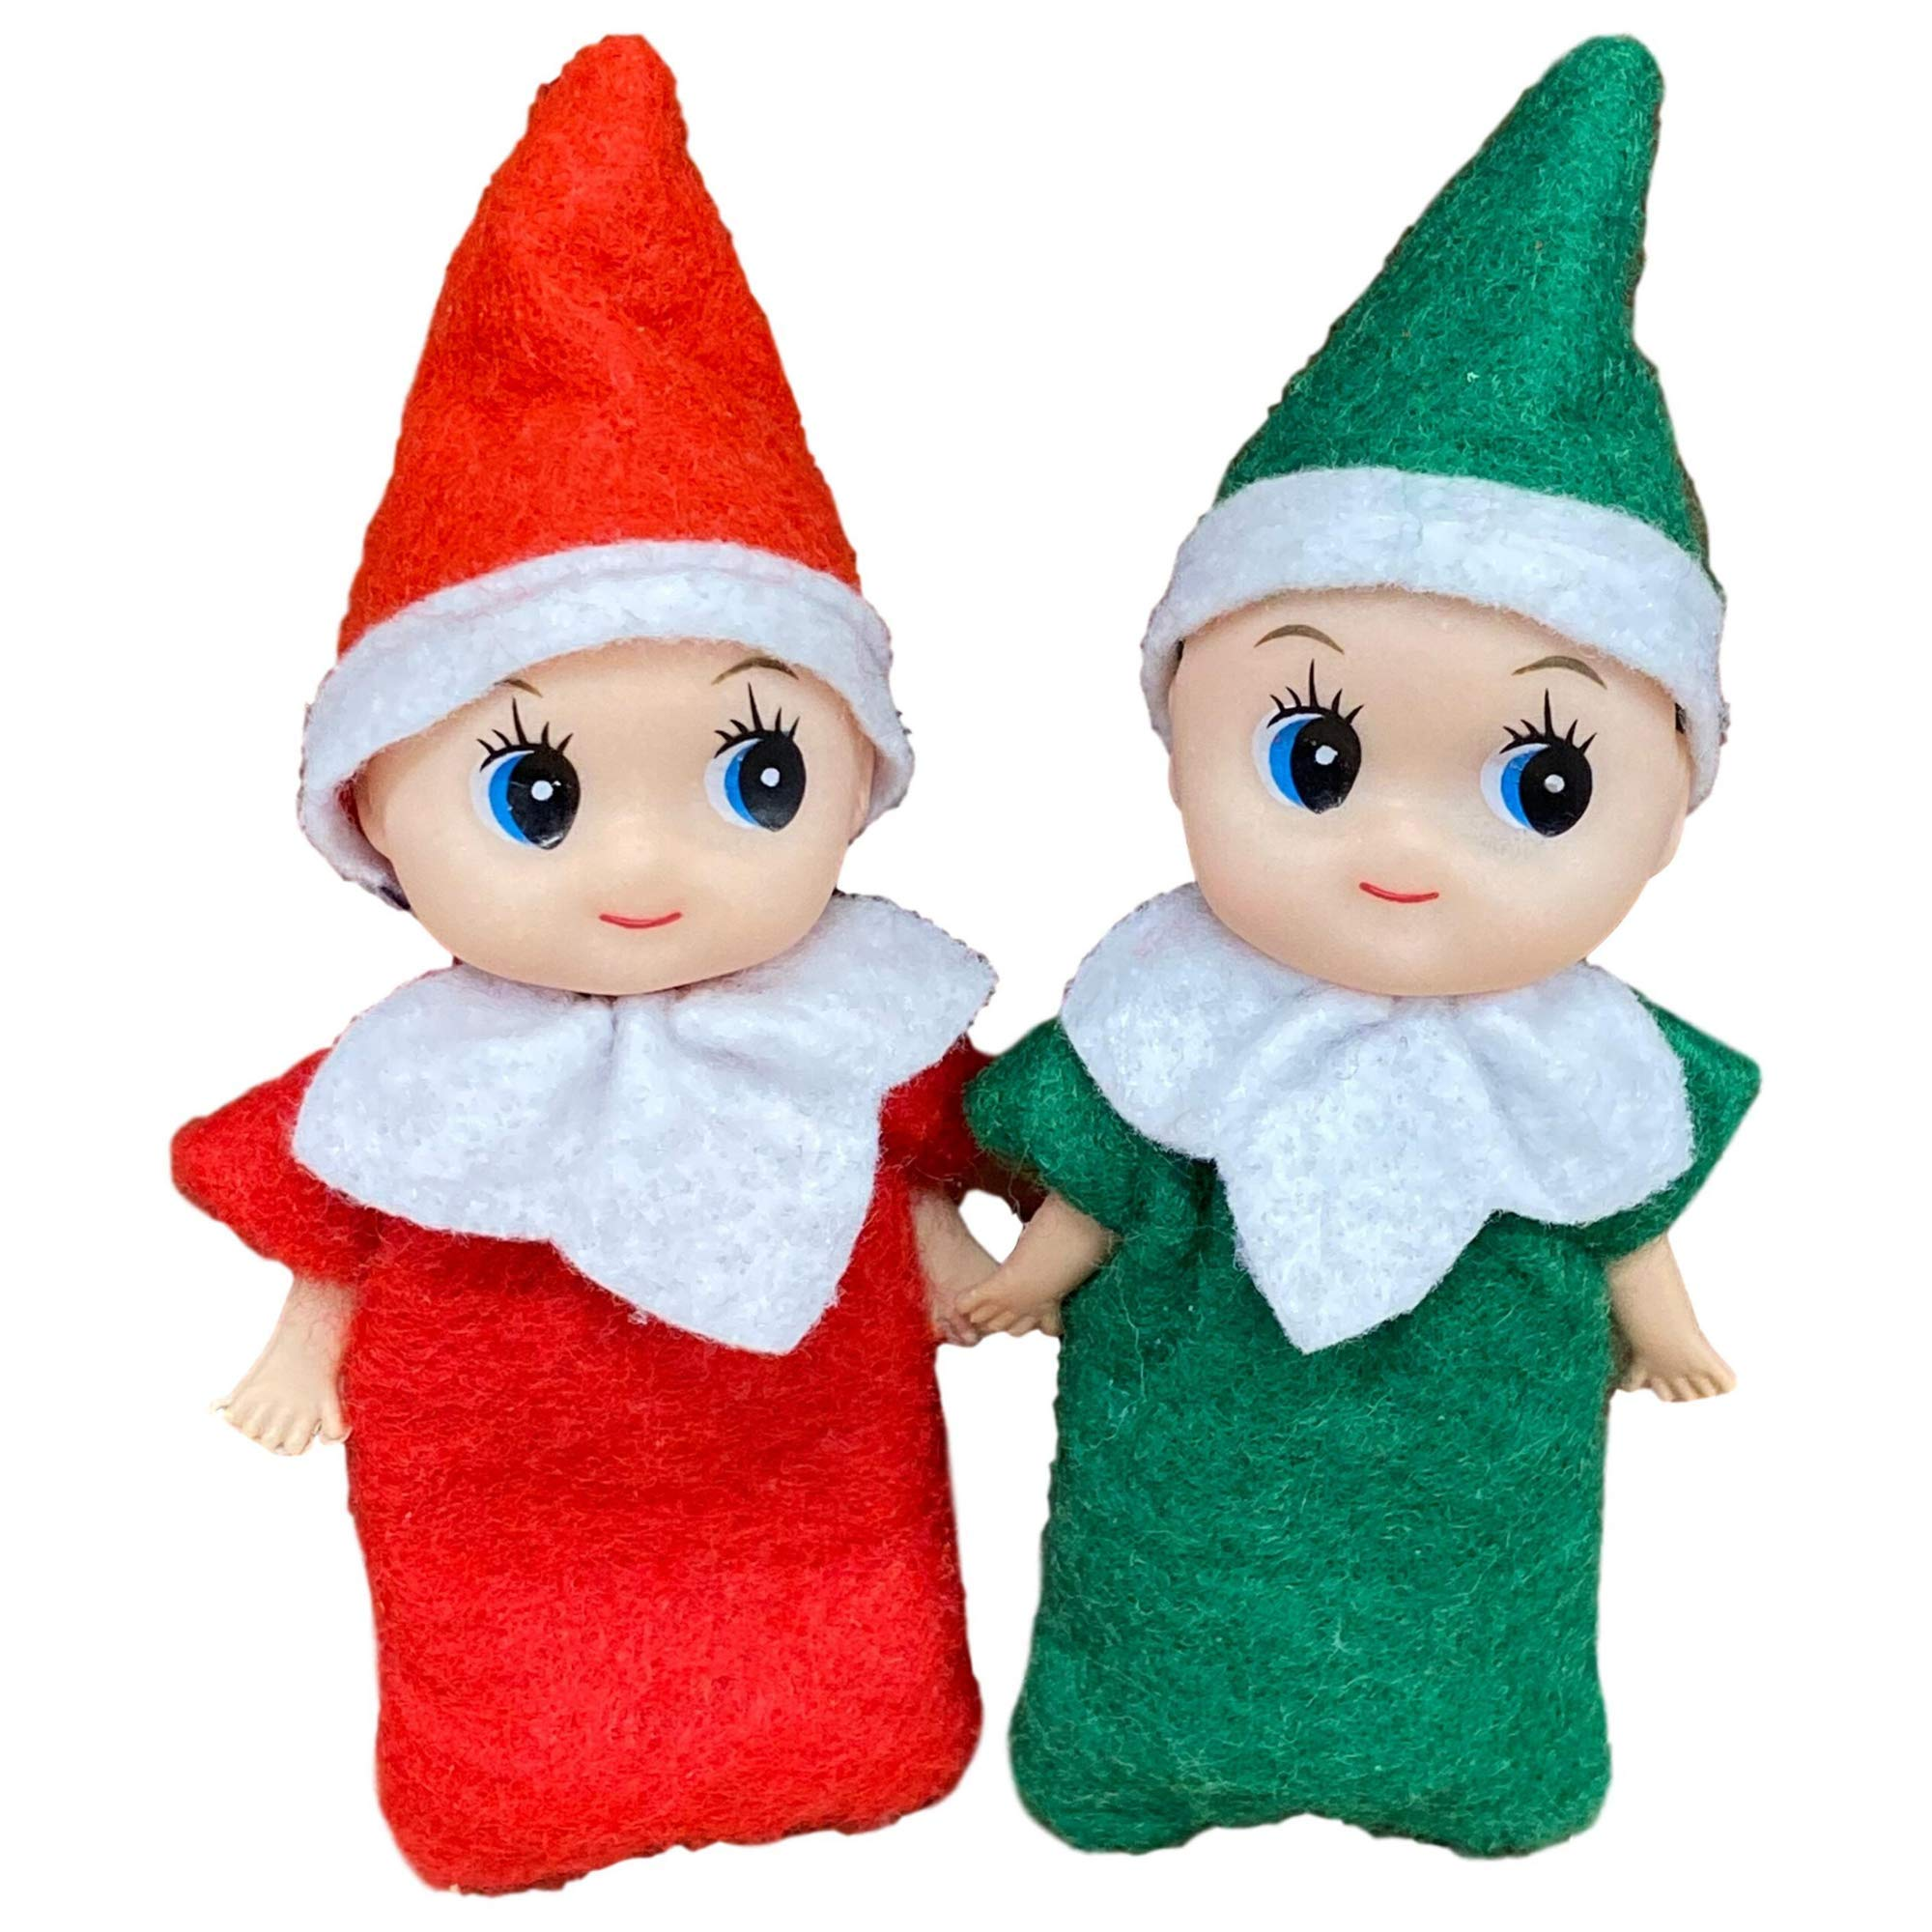 Picki Nicki Elf Baby Twins- Two Little Christmas Elves, an Elf Baby Boy and Elf Baby Girl are Perfect Accessories and Props for Elf Fun, Advent Calendars and Stocking Stuffers